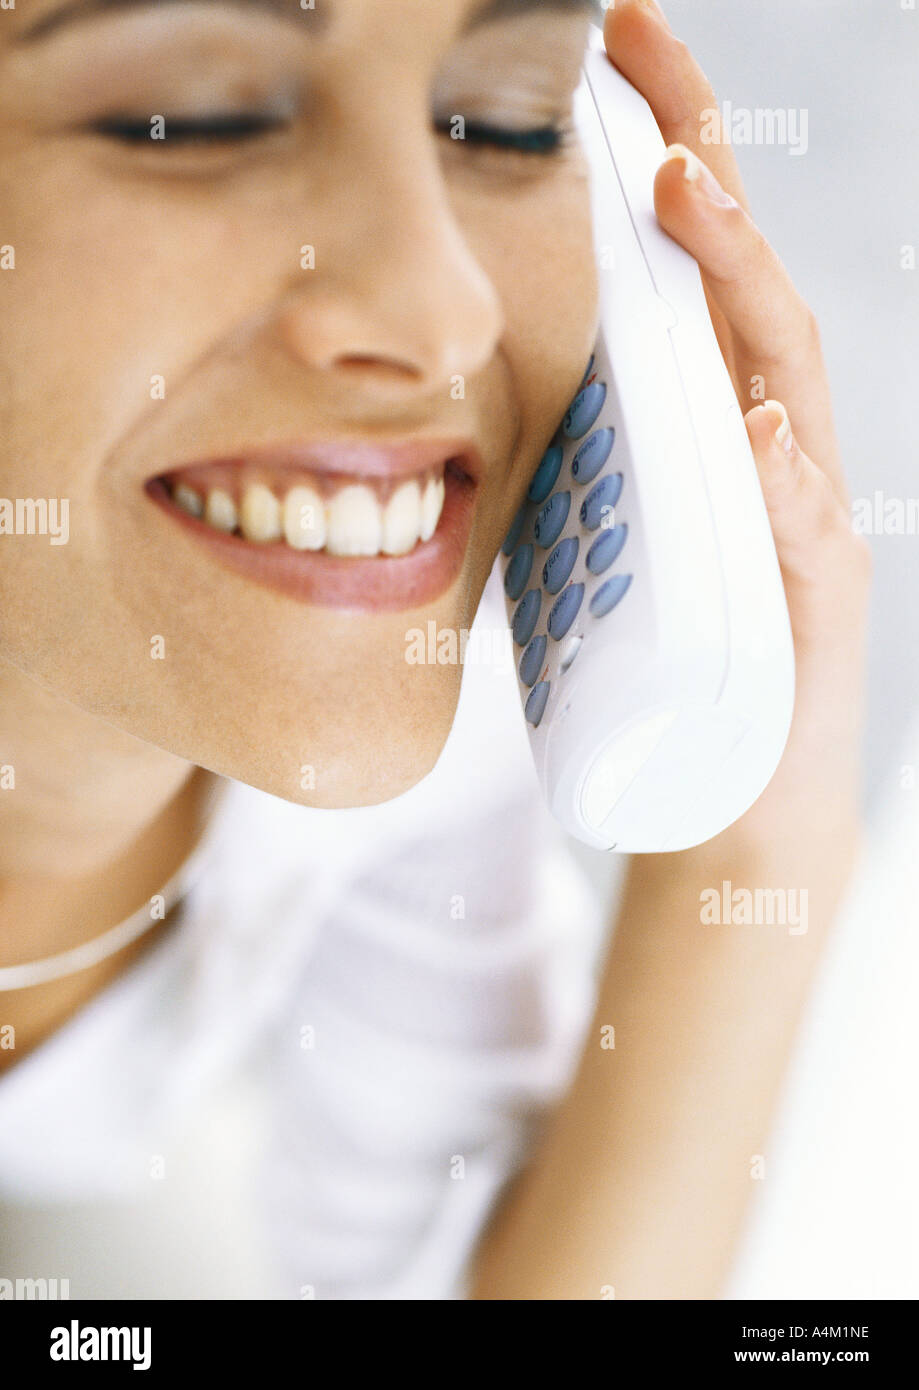 Woman talking on cordless phone with eyes closed, smiling - Stock Image